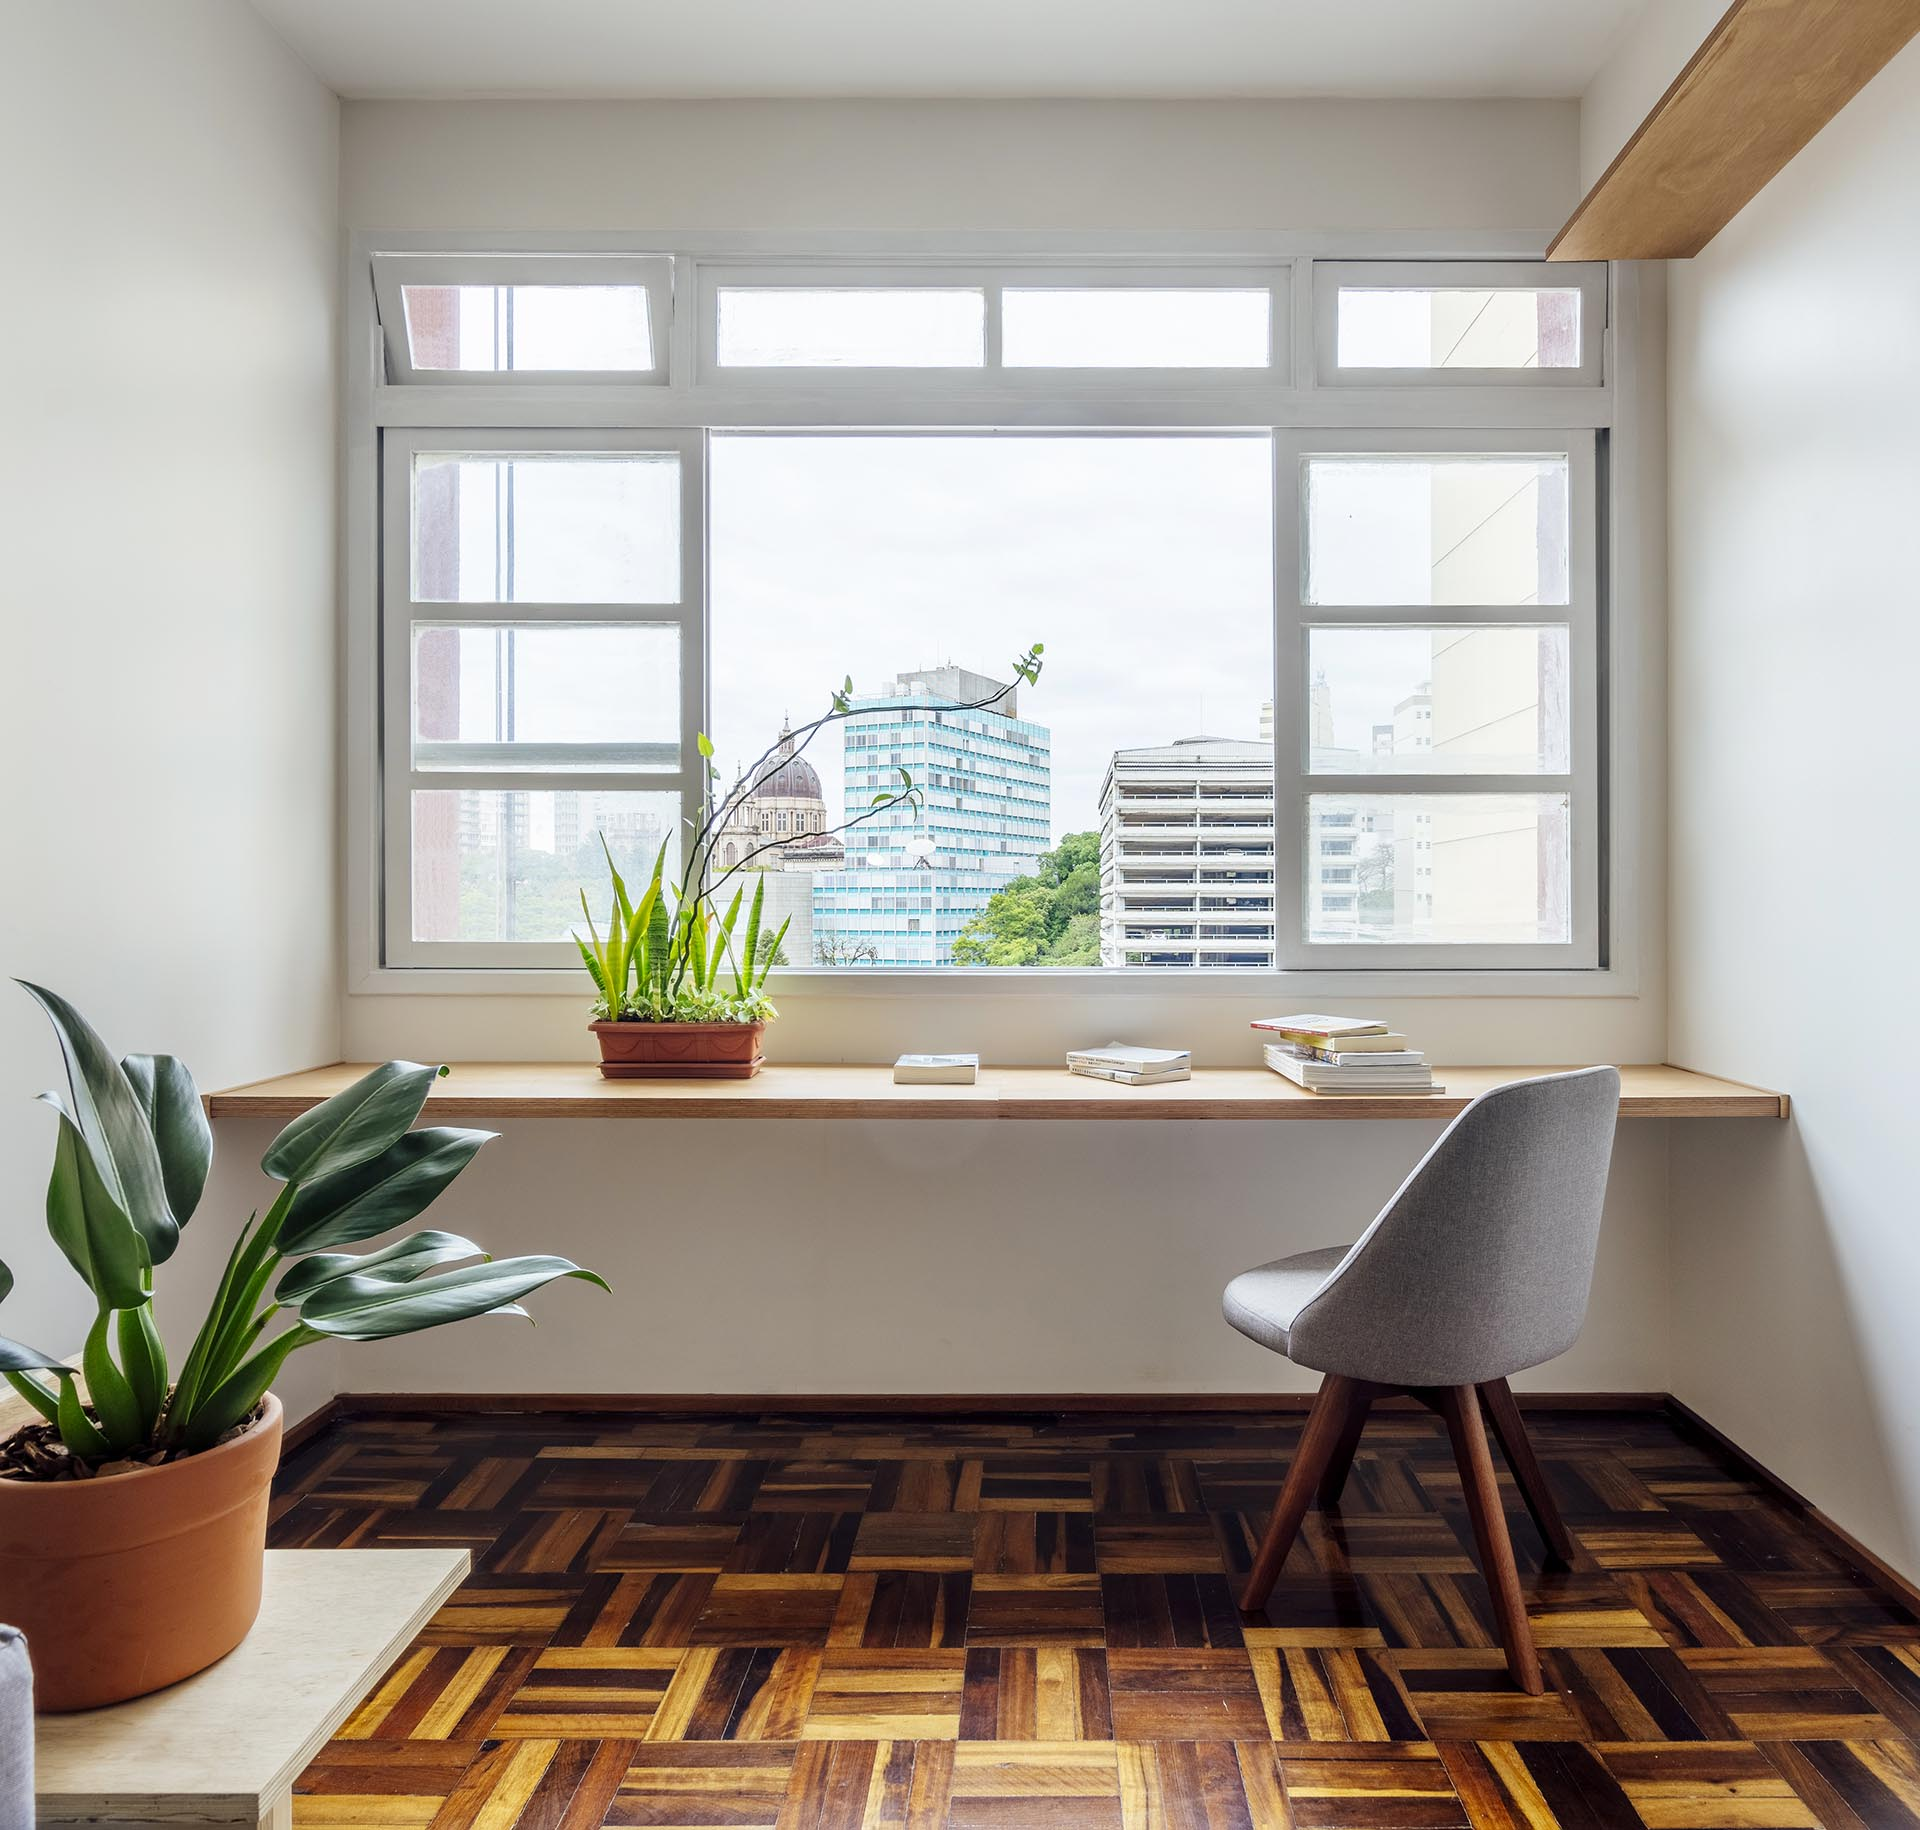 A simple home office was created using a wood desk top.